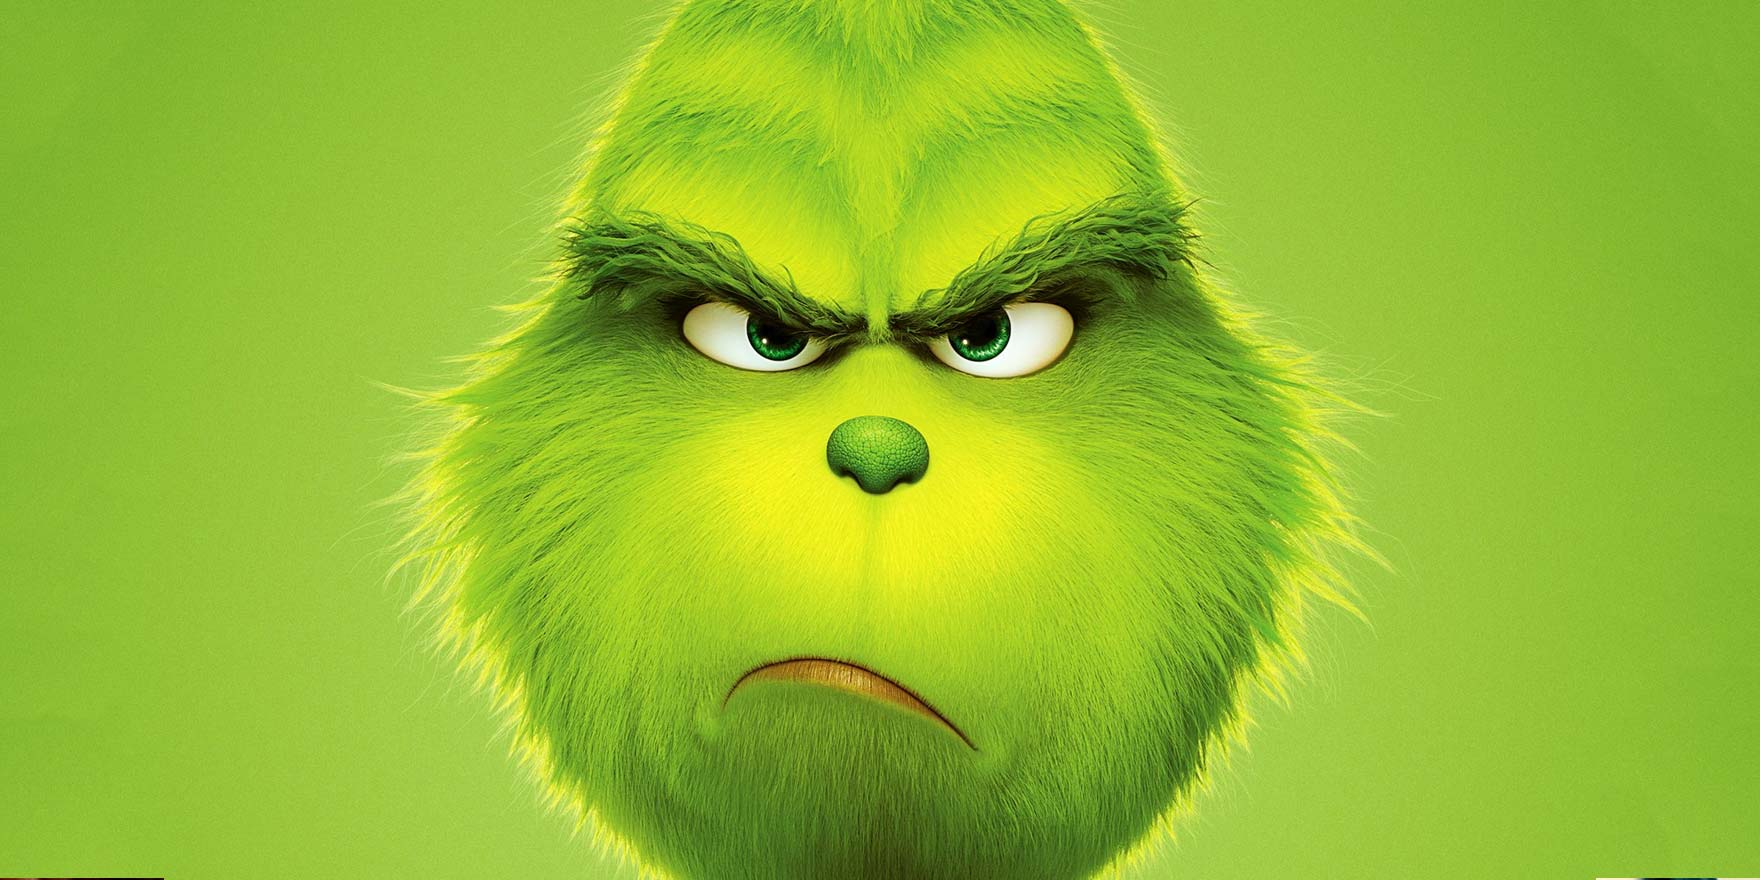 The Grinch - Header Image